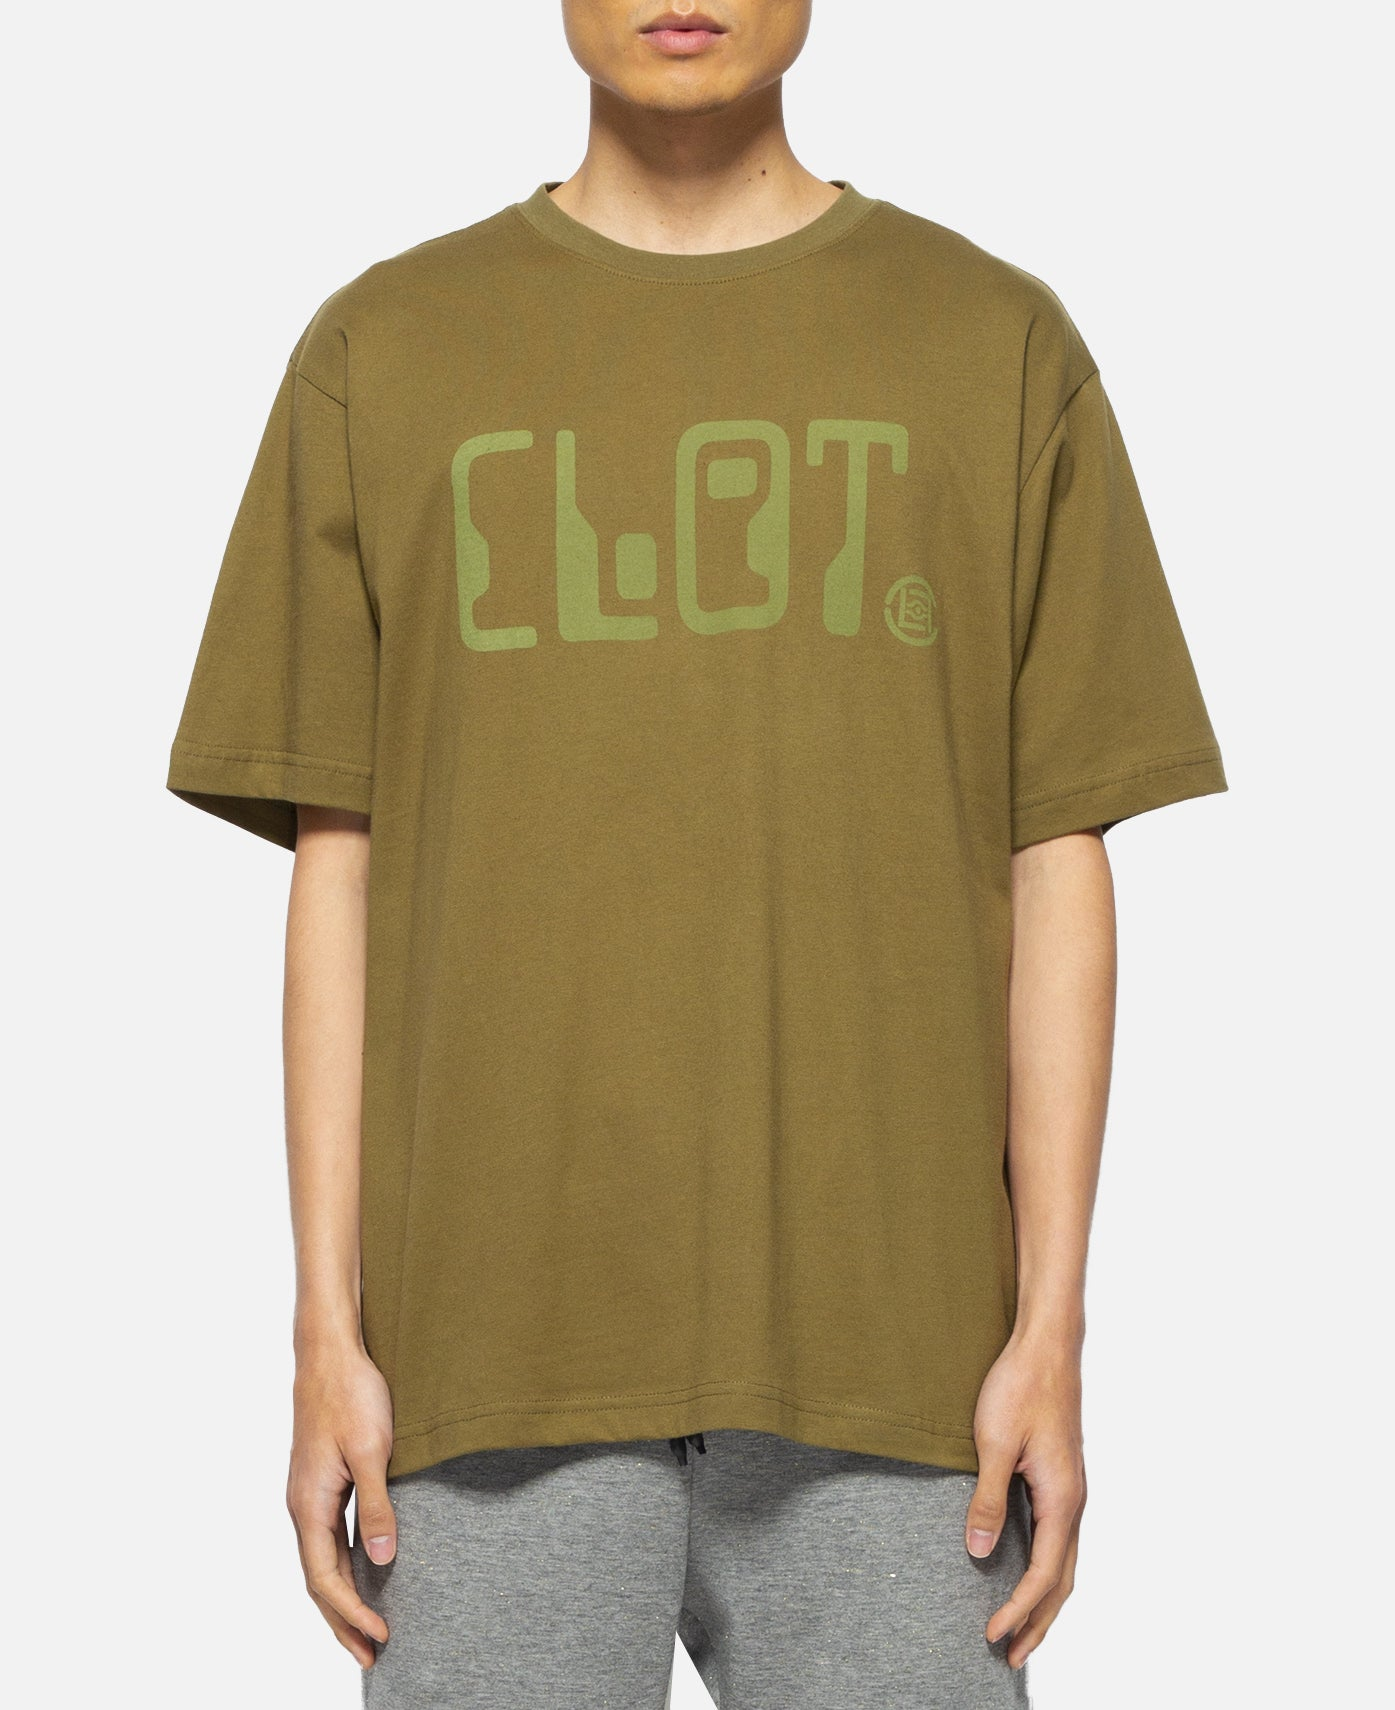 Corben Dallas Font T-Shirt (Green)